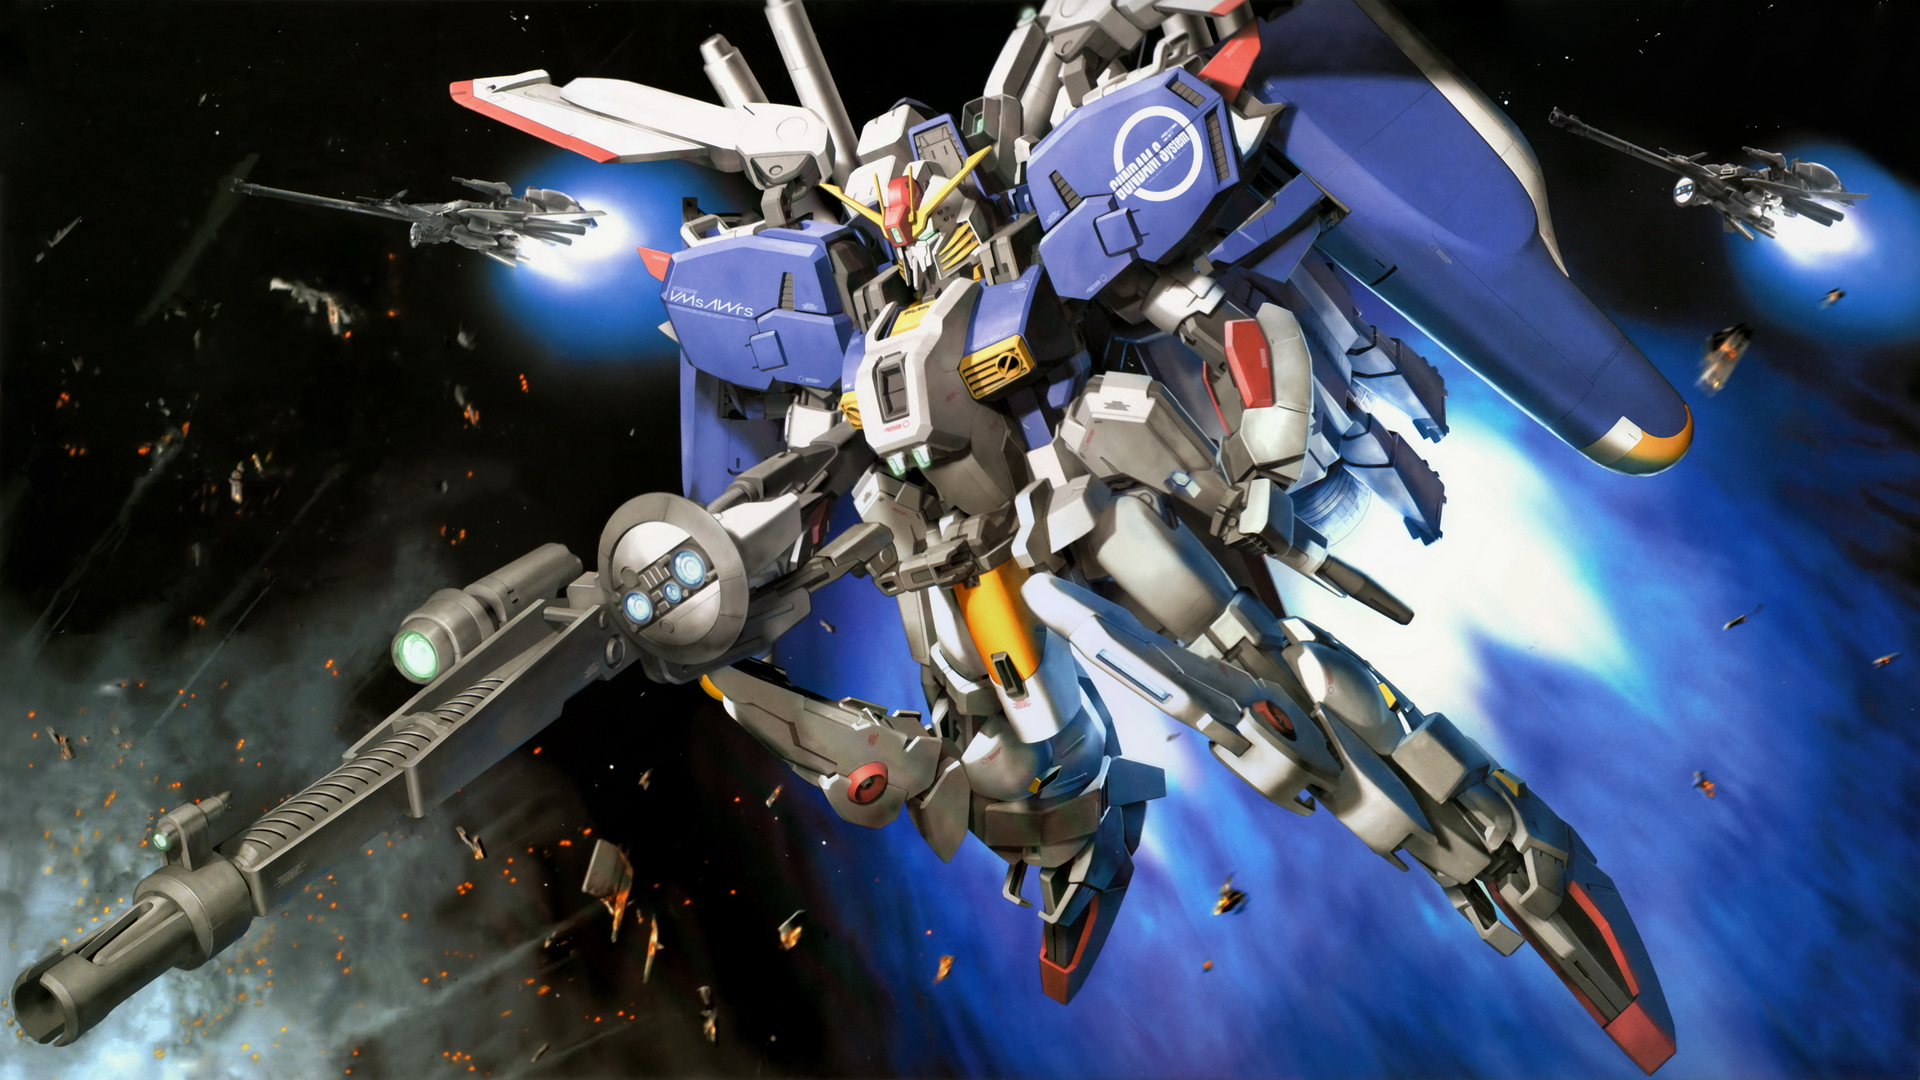 Download Gundam Wallpapers HD Desktop Wallpapers Gundam Wallpapers 1920x1080